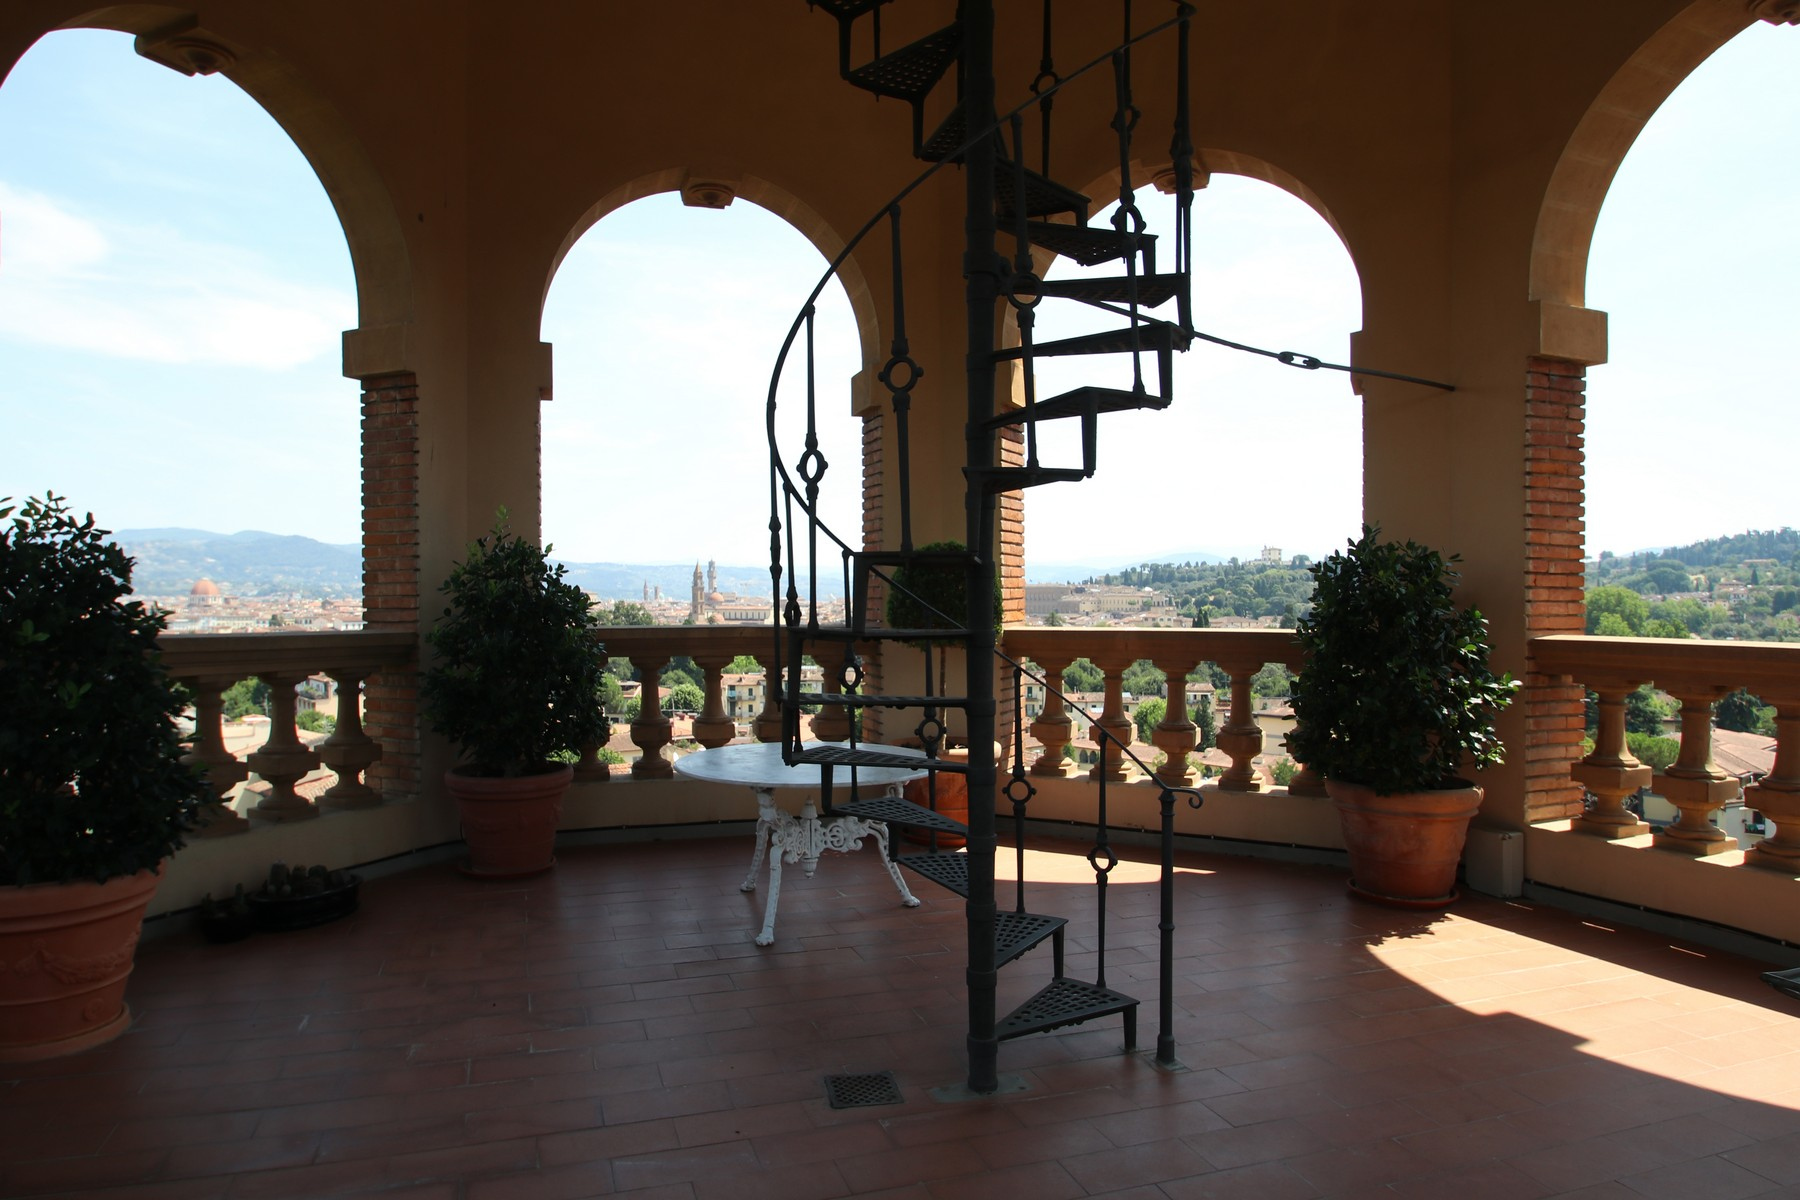 Property for Sale at Flamboyant Top-floor Apartment with Tower in Bellosguardo, Florence Firenze, Florence Italy